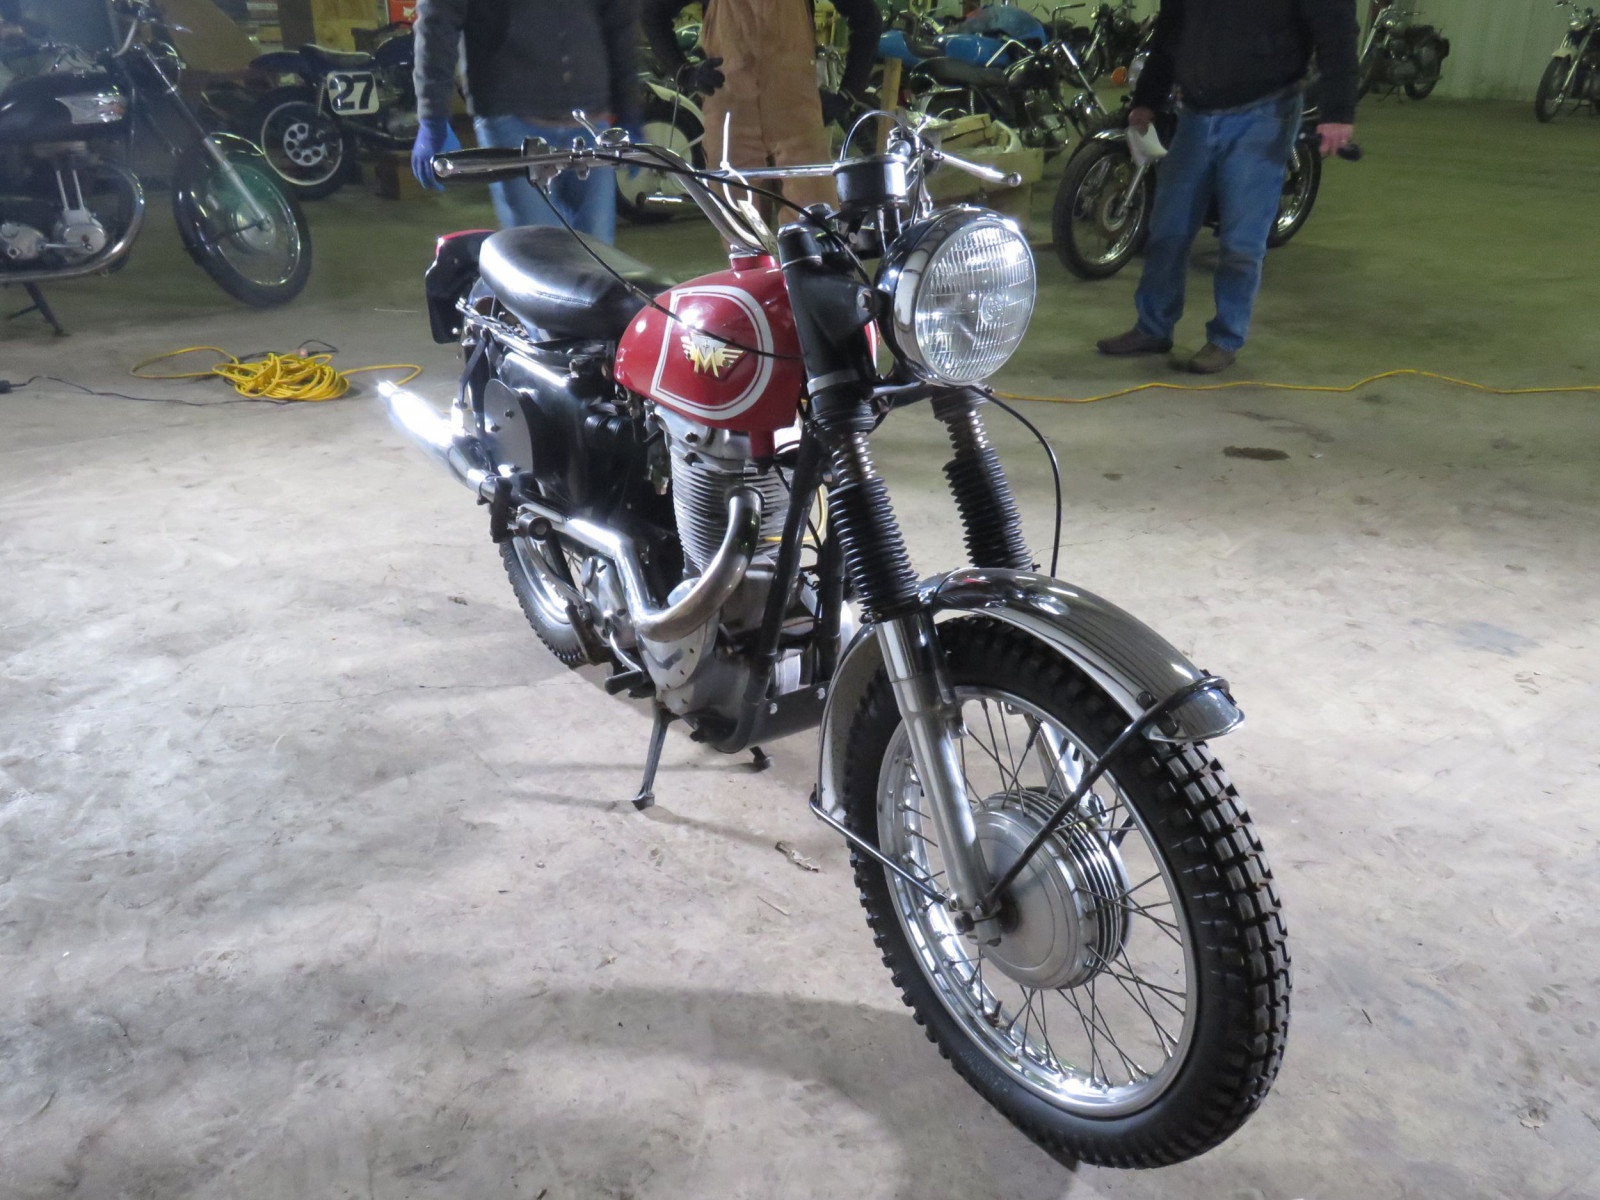 1967 Matchless G80 Competition Scrambler Motorcycle - Image 2